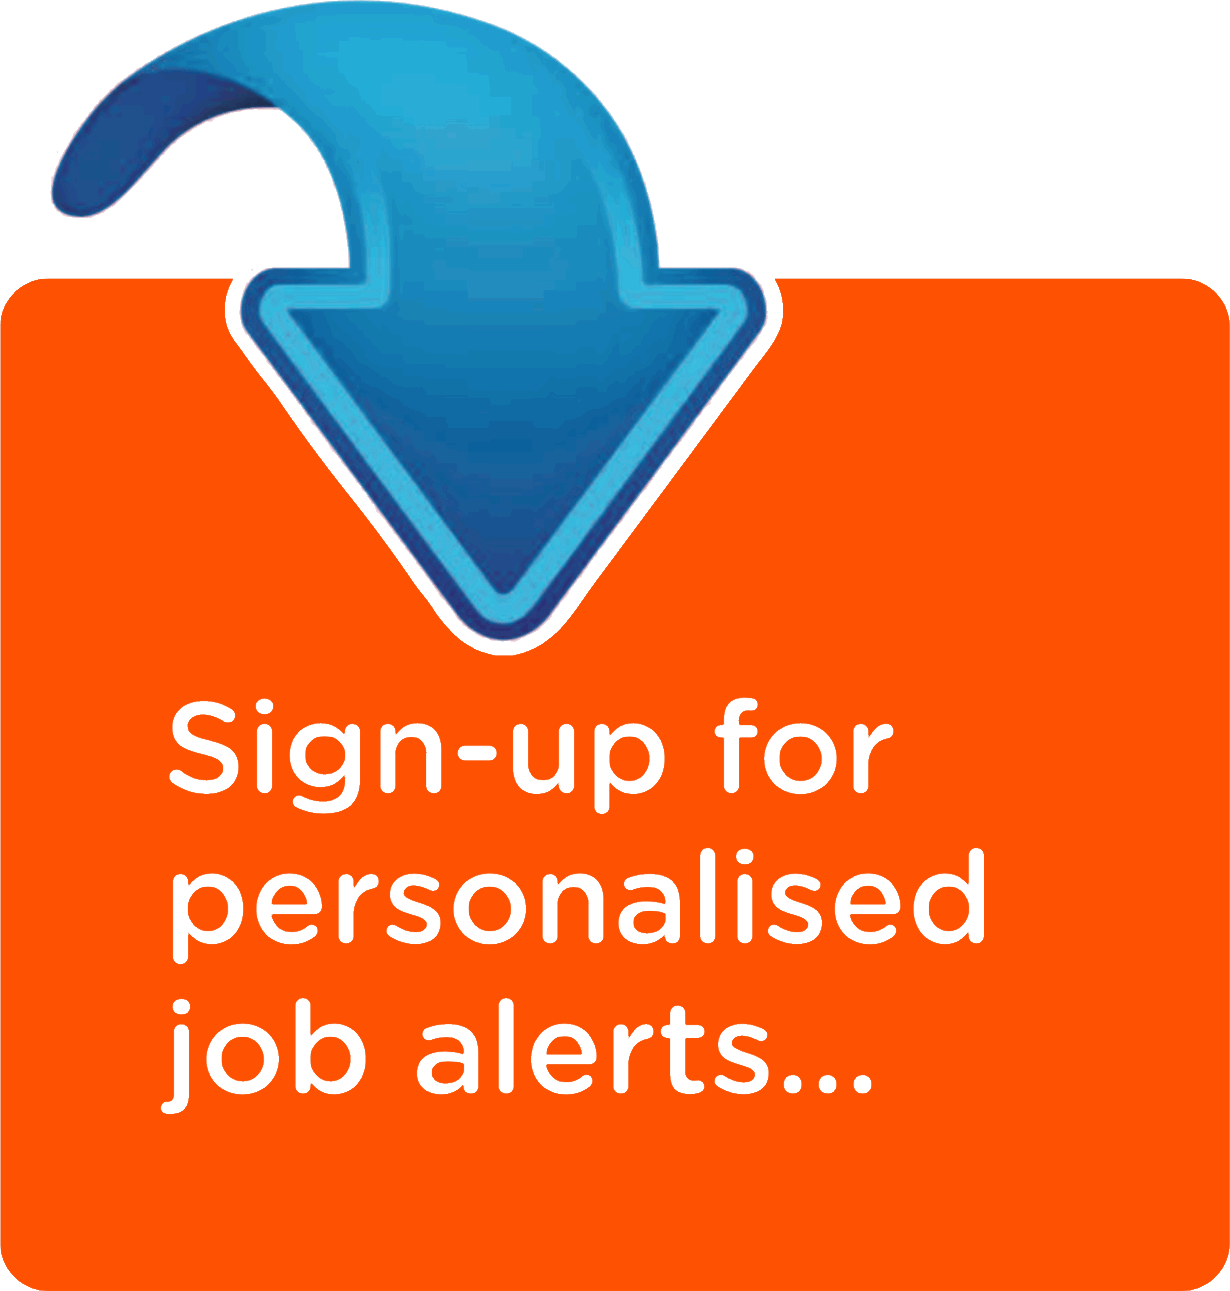 Sign-up for personalised job alerts...